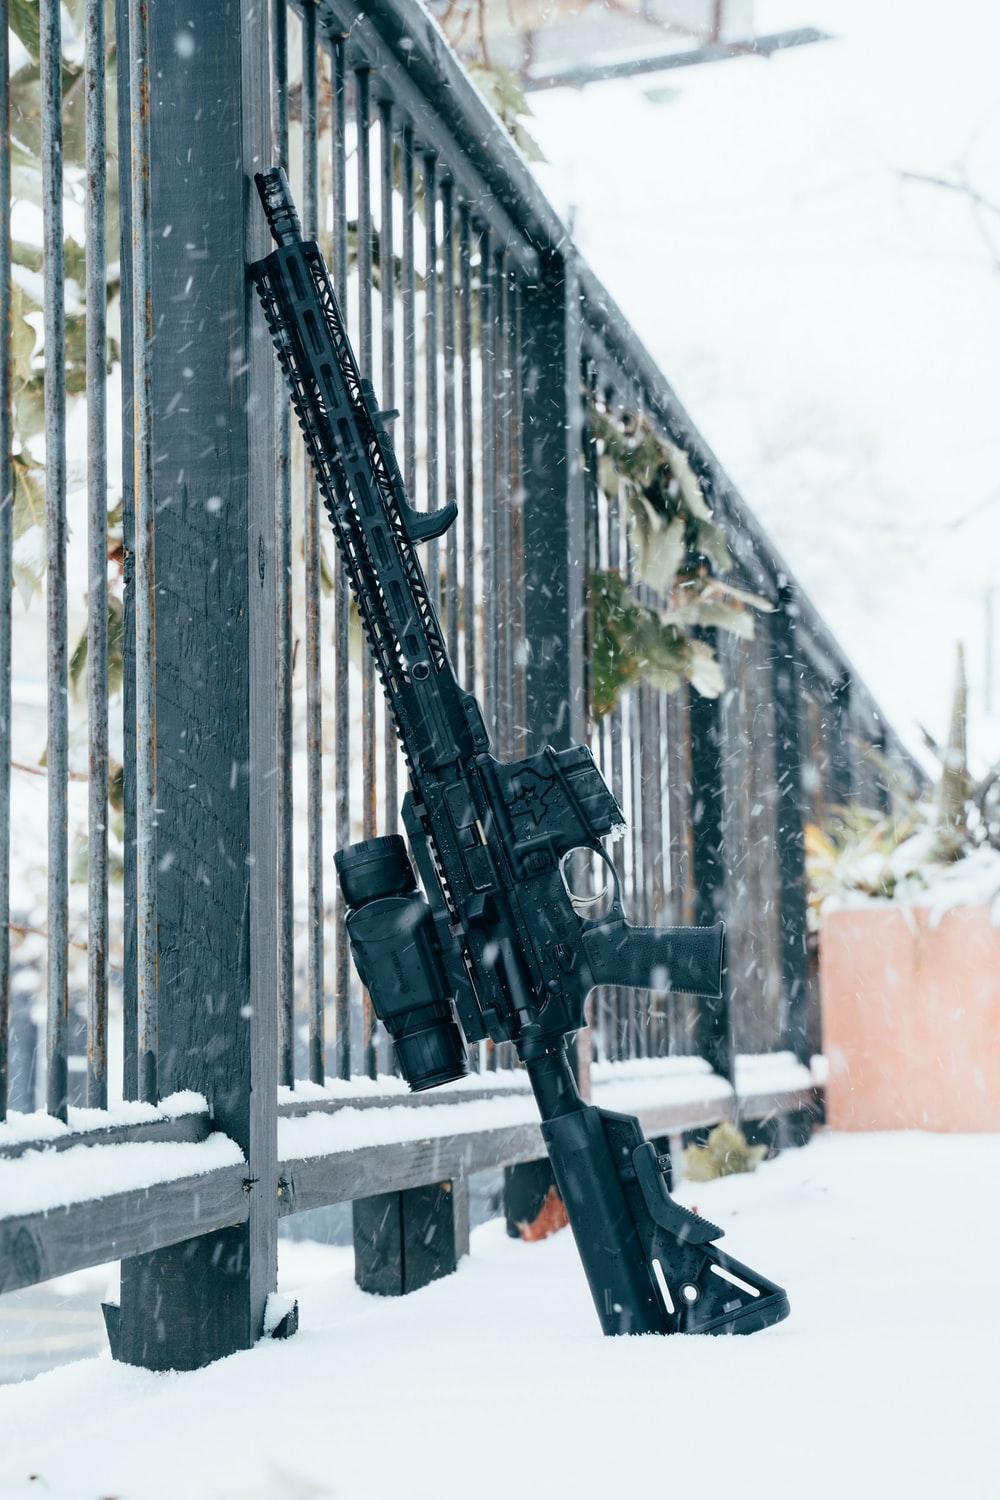 black rifle on snow covered ground